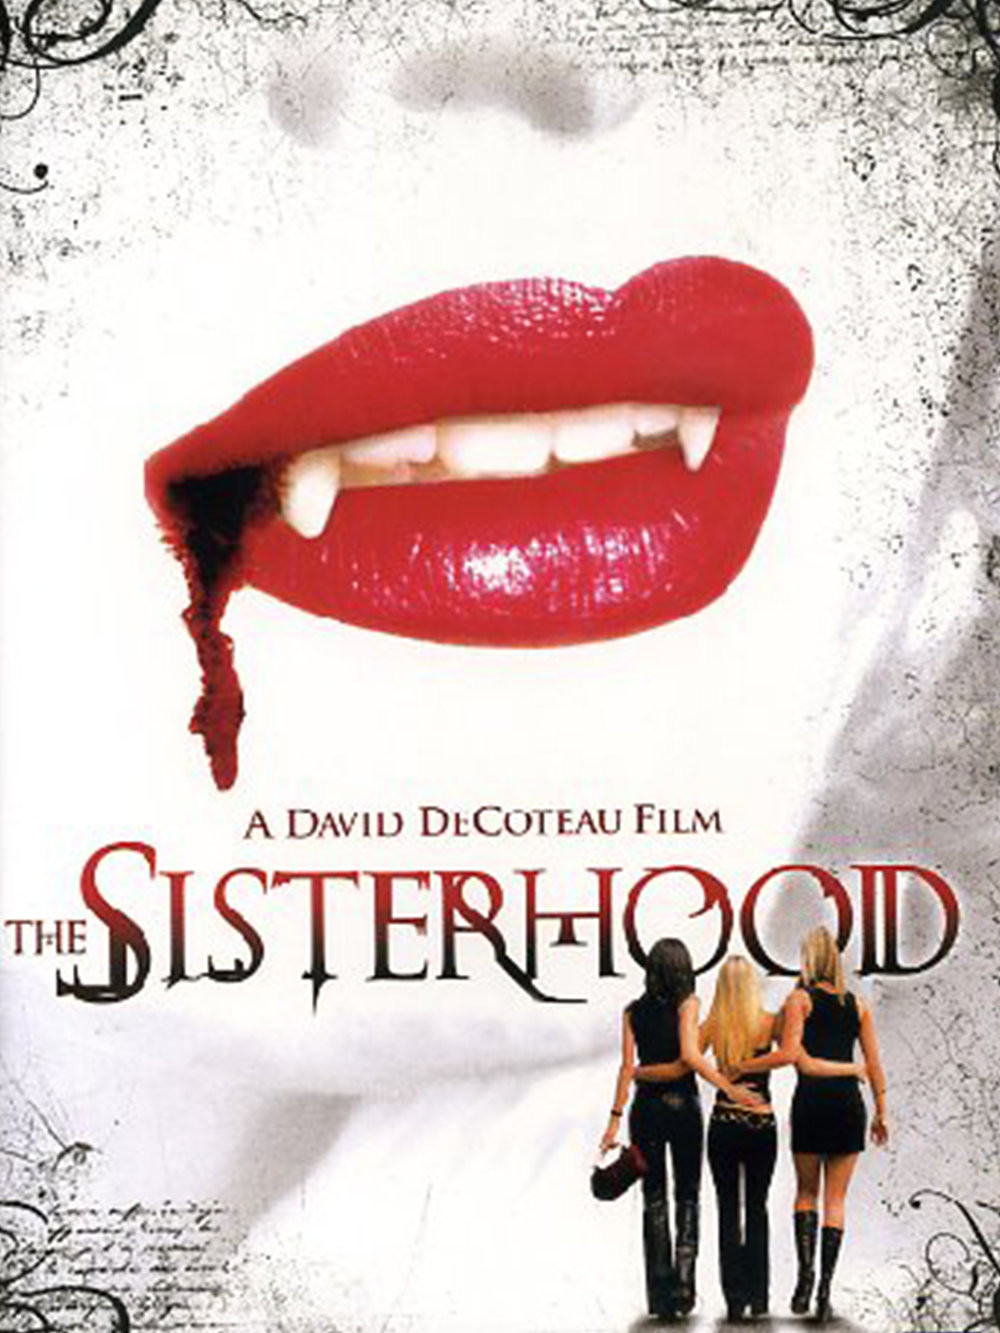 Here-Sisterhood-Full-Image-en-US.jpg